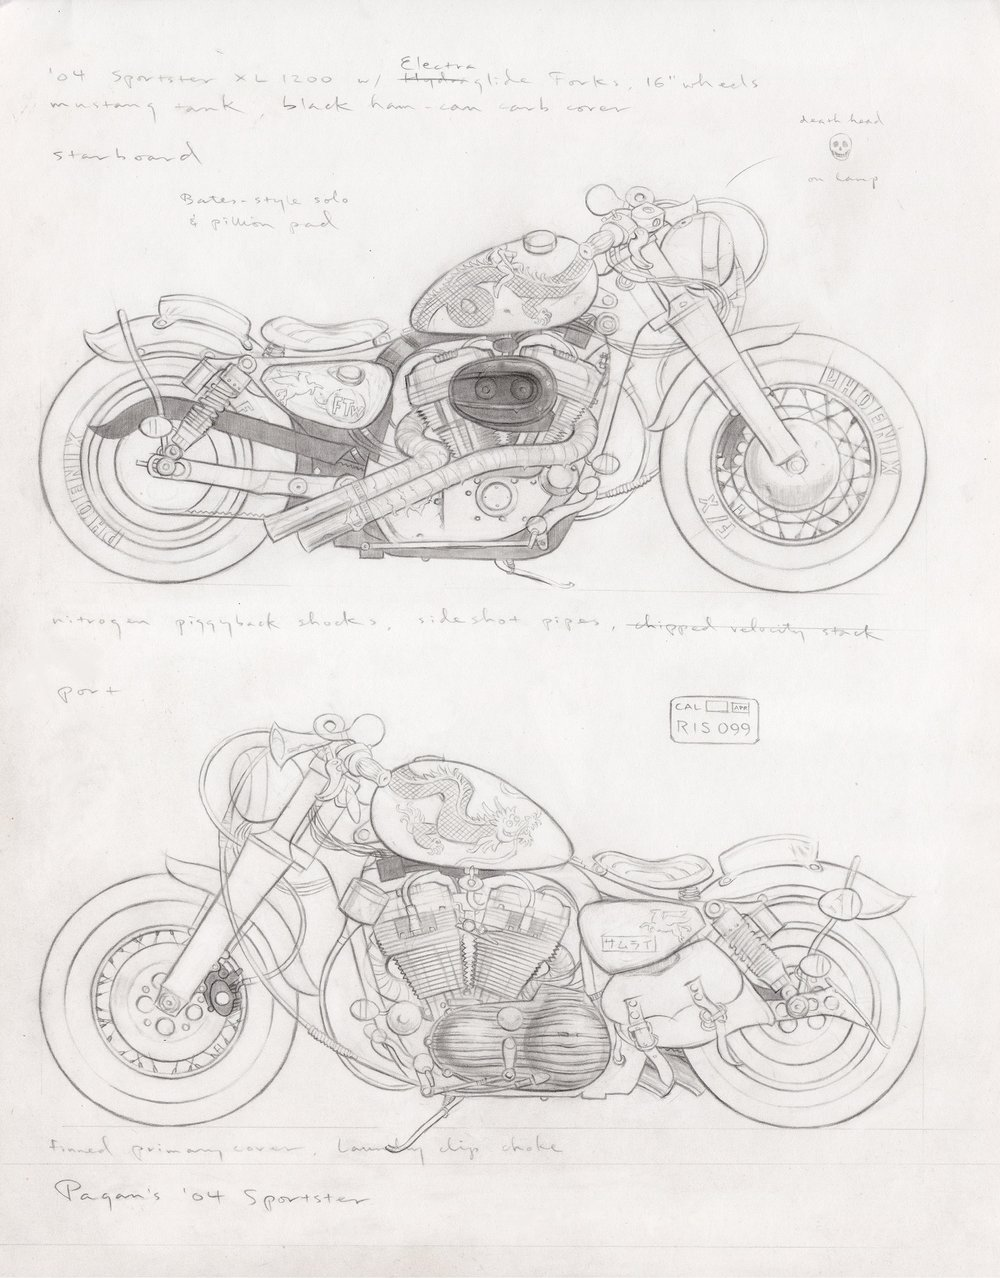 Pagan's '04 Sportster, 2014, pencil on paper, 14 x 11 inches